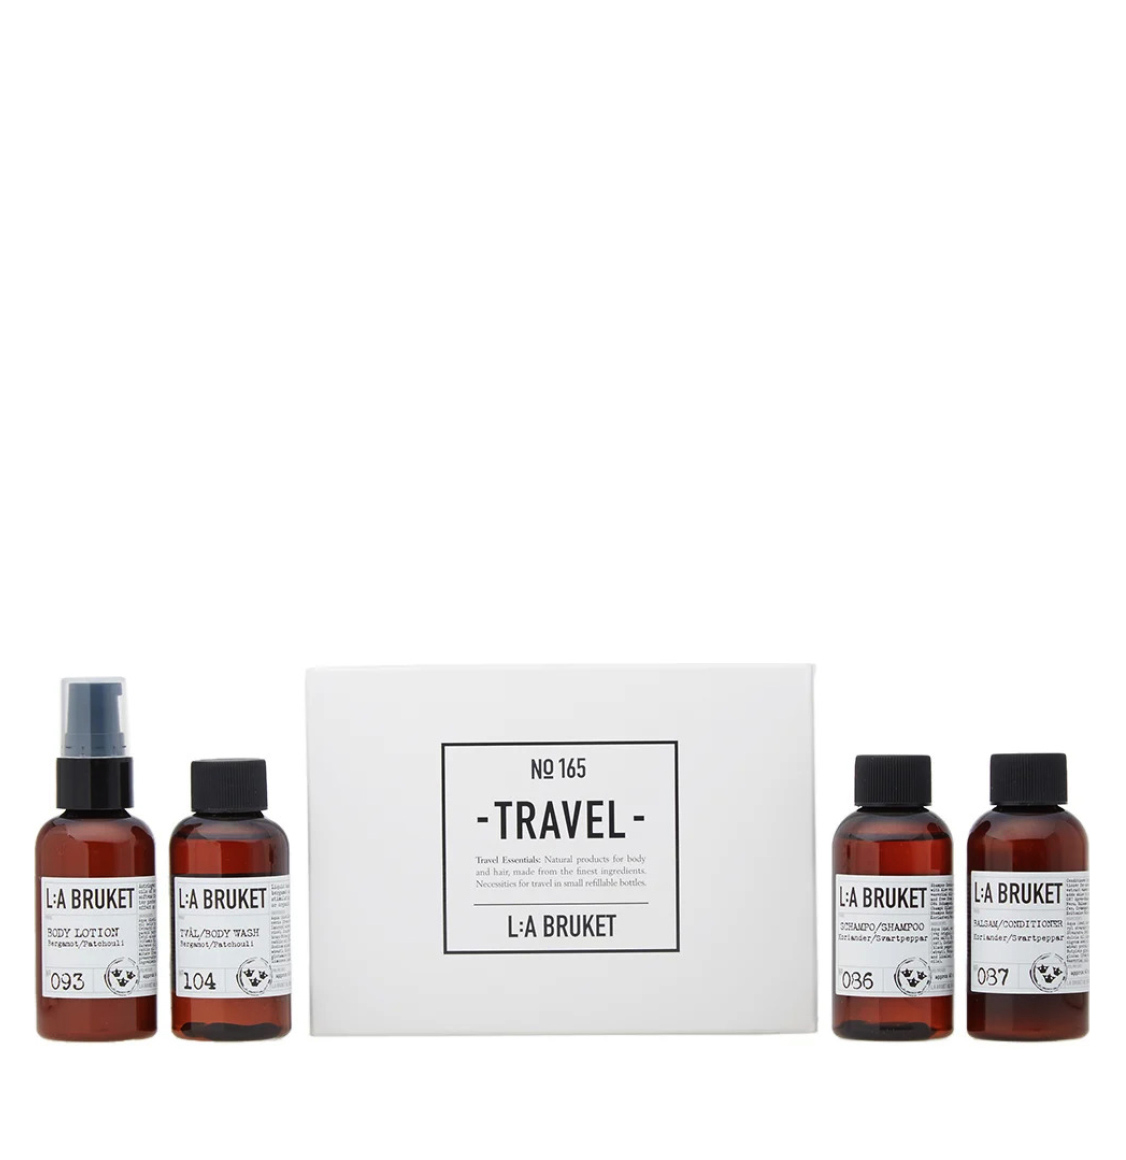 LA Bruket 165 Travel Kit 4 x 60 ml